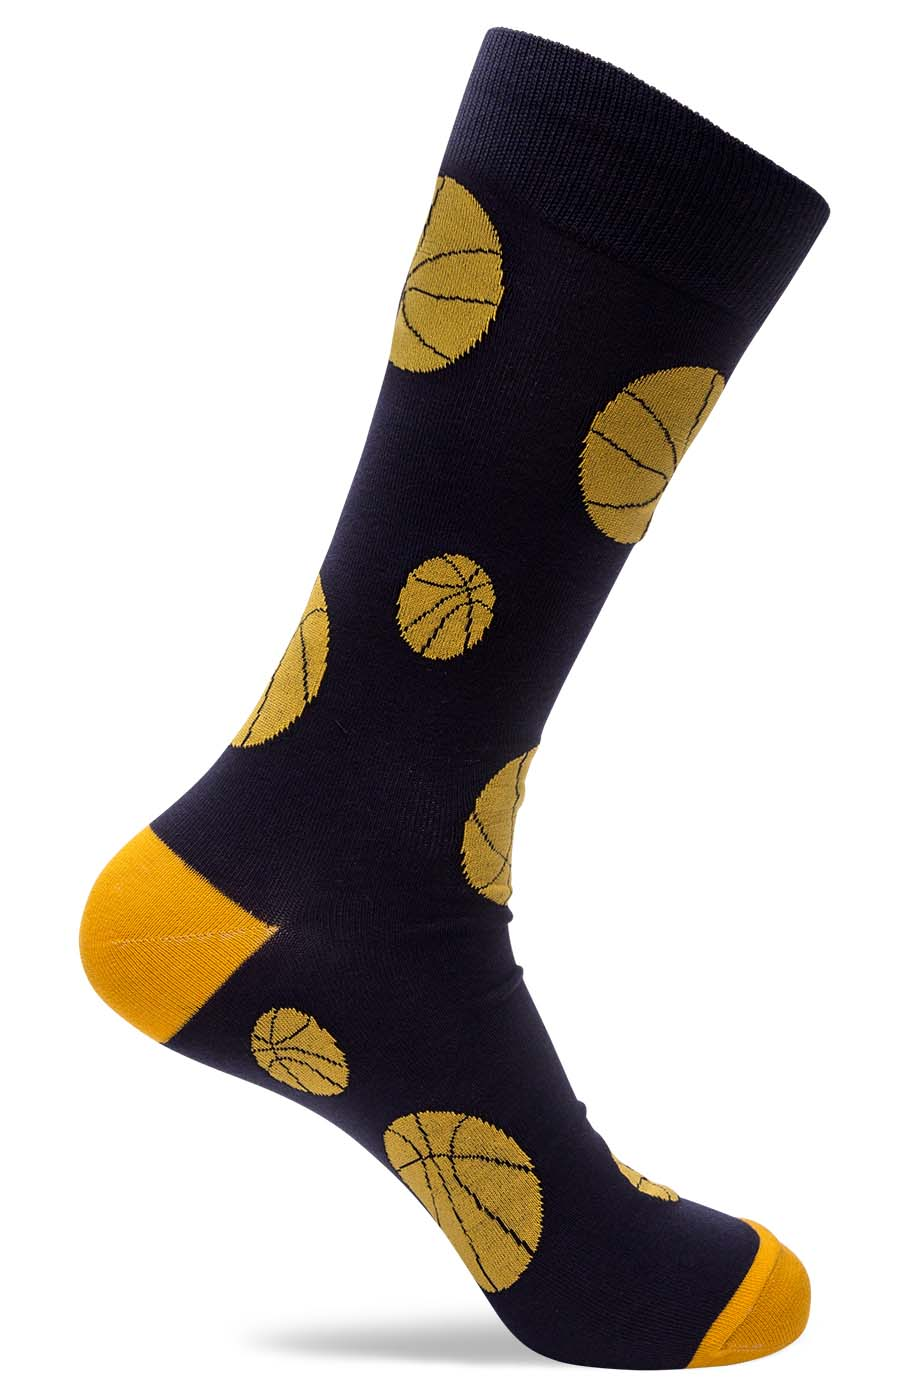 Mens Basketball Novelty Dress Socks